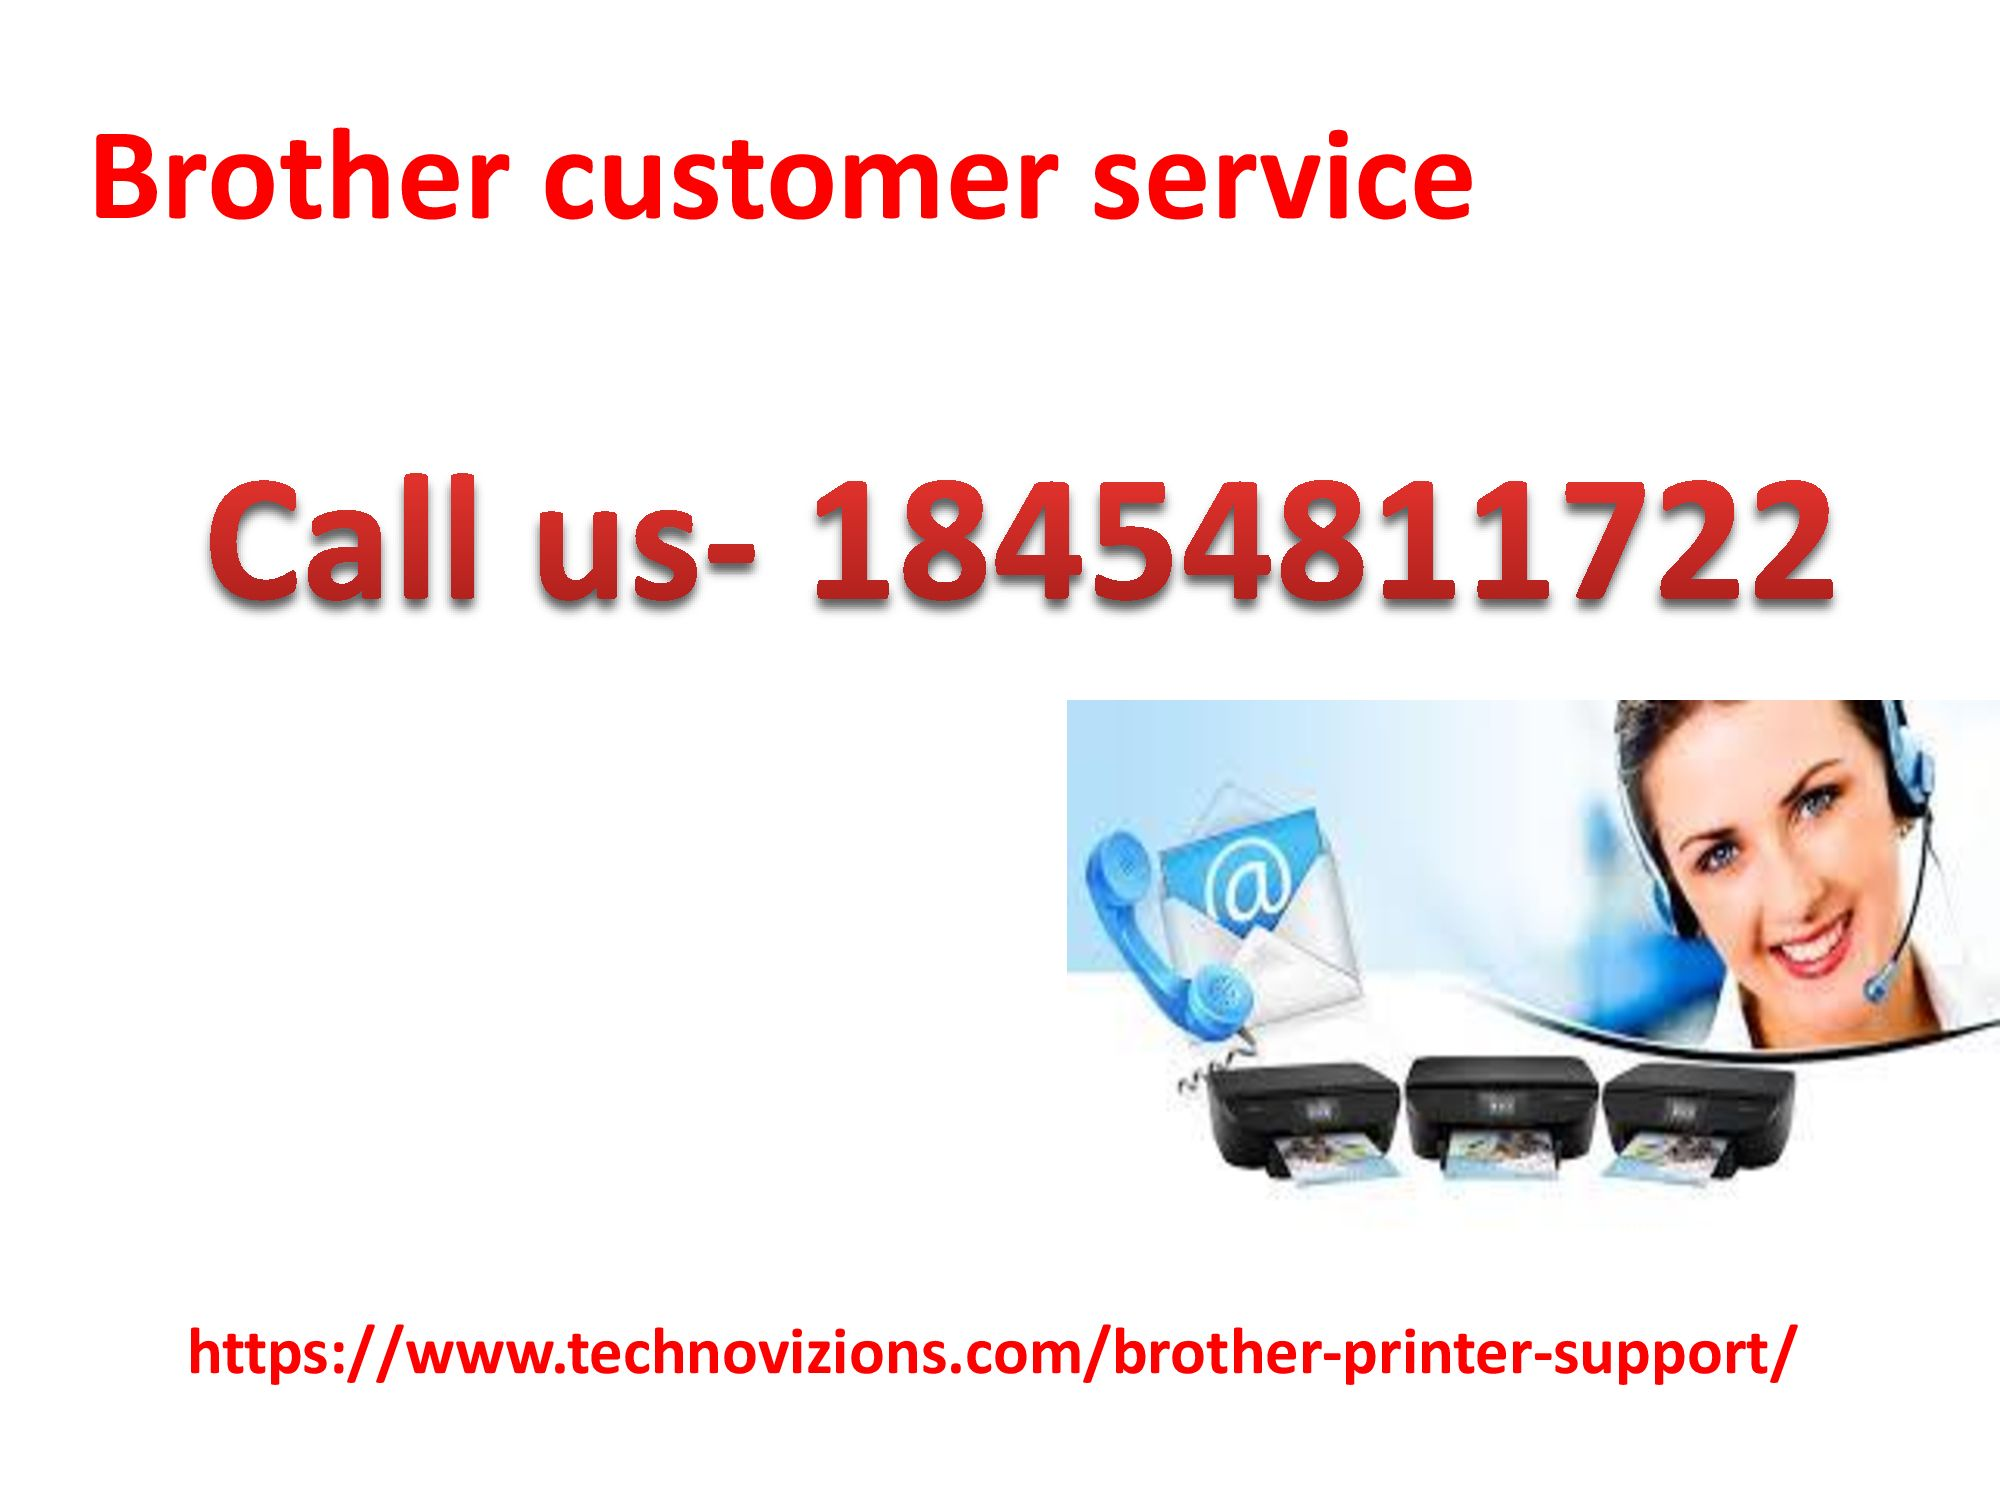 Contact Brother Printer Support Phone Number +1870229